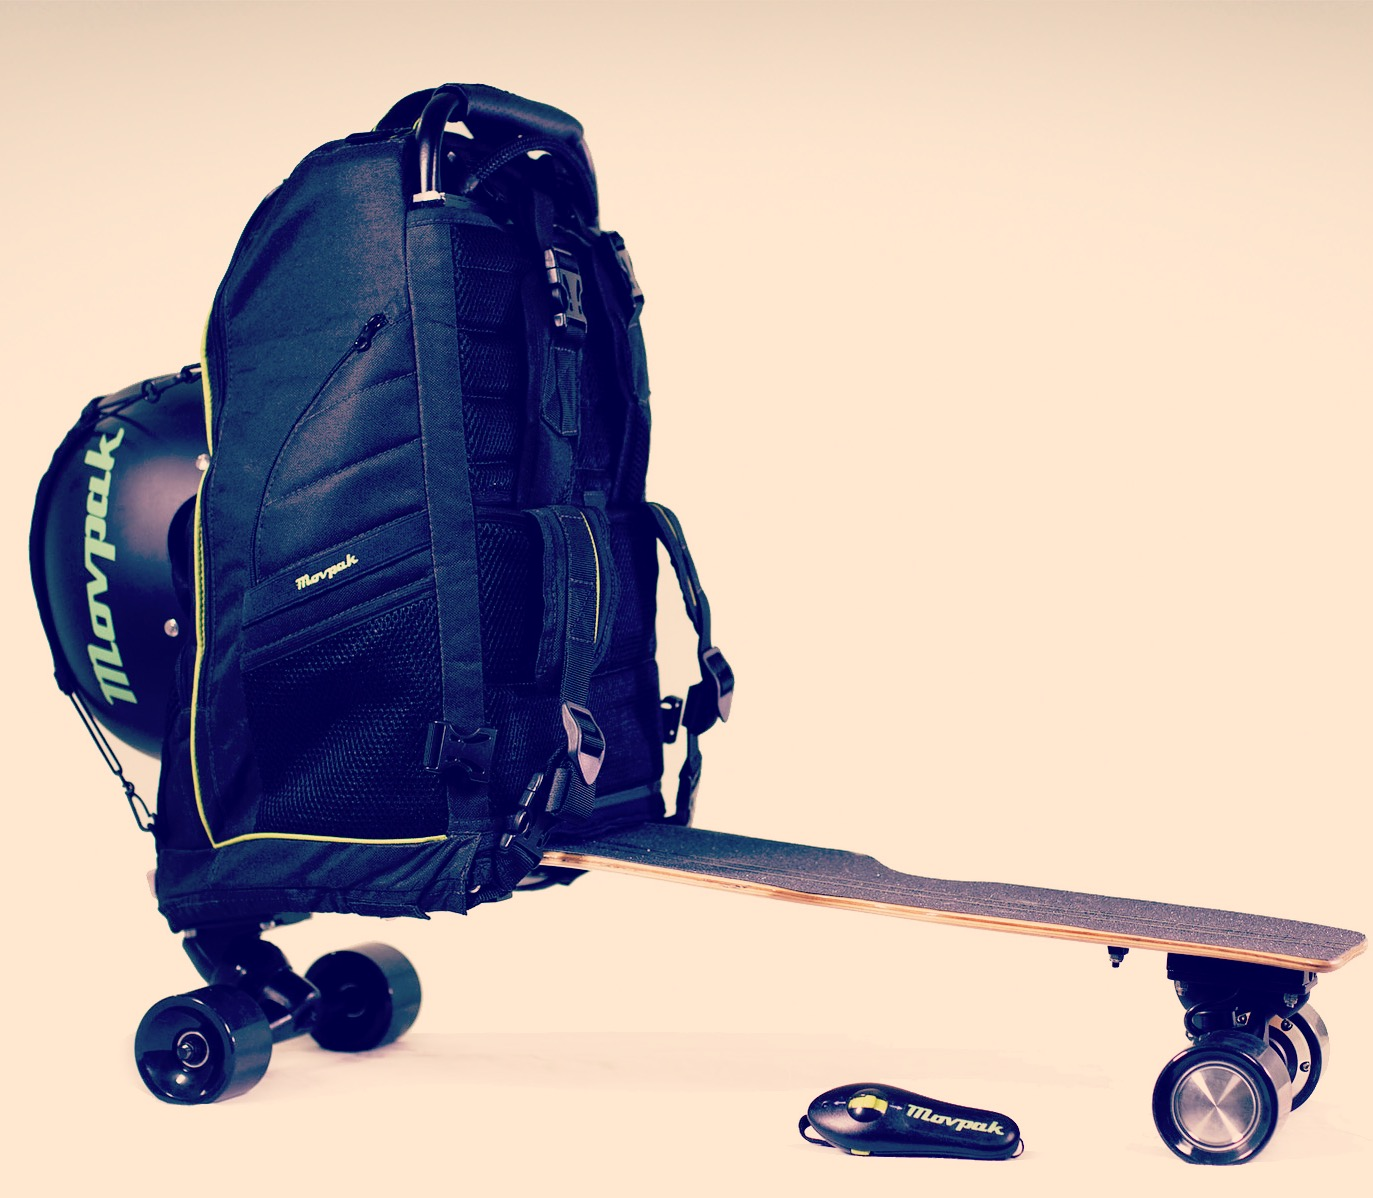 The First Portable Electric Vehicle & Backpack In One